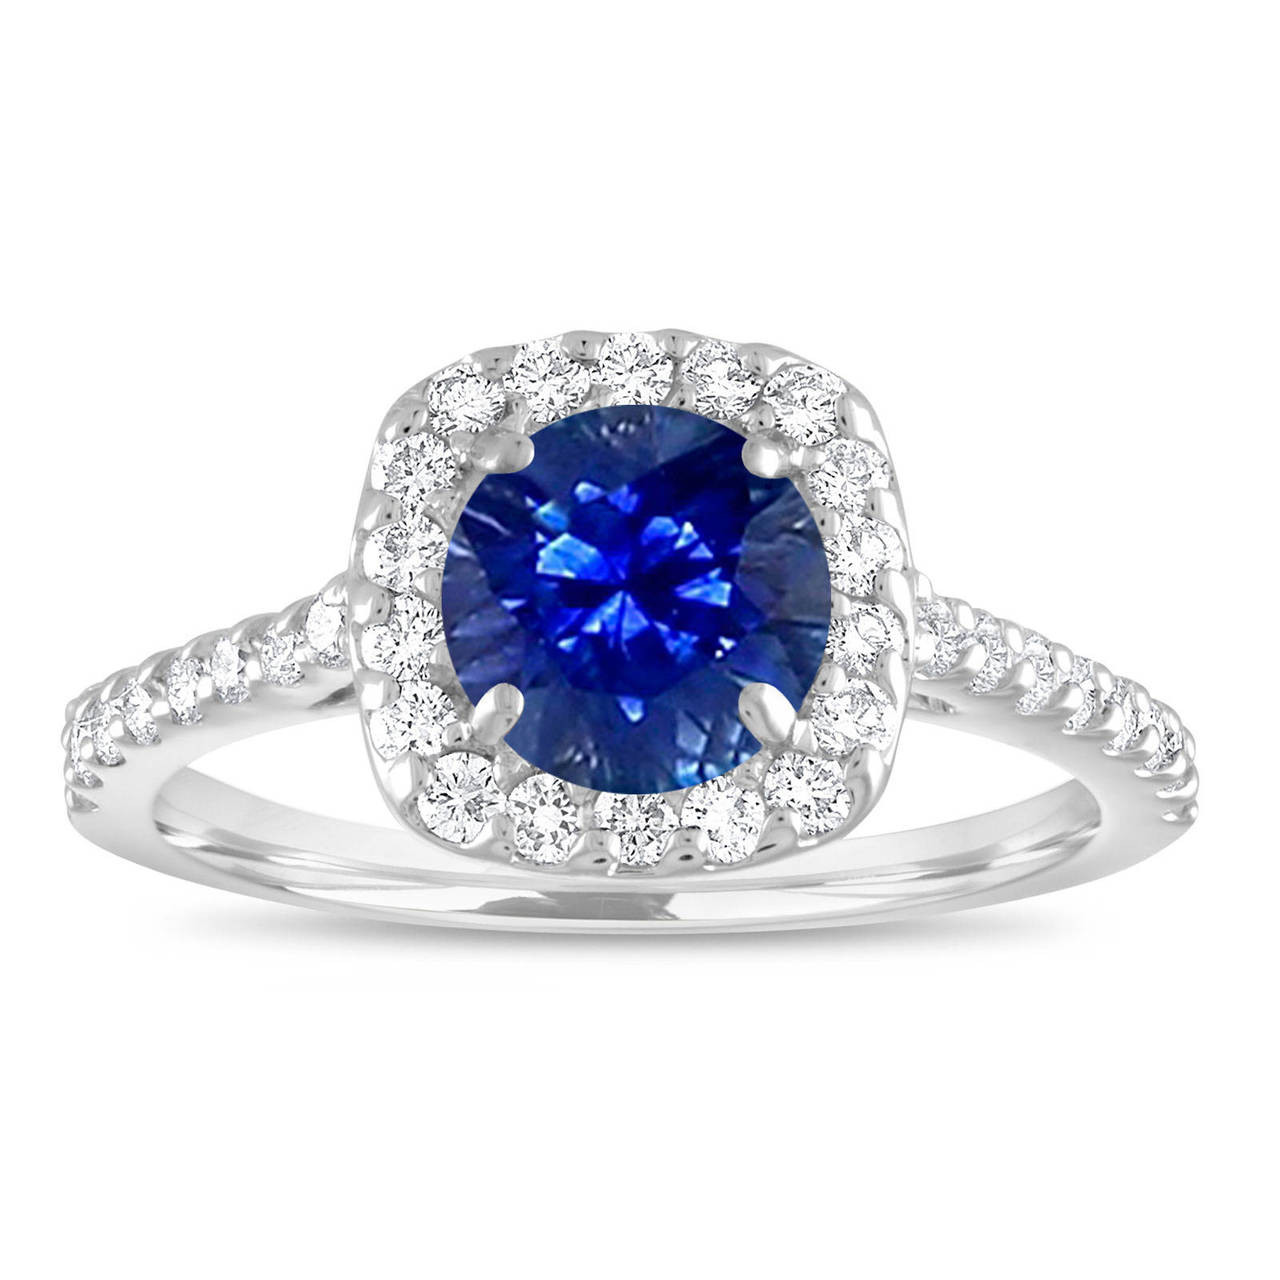 Sapphire Engagement Ring White Gold Blue Sapphire